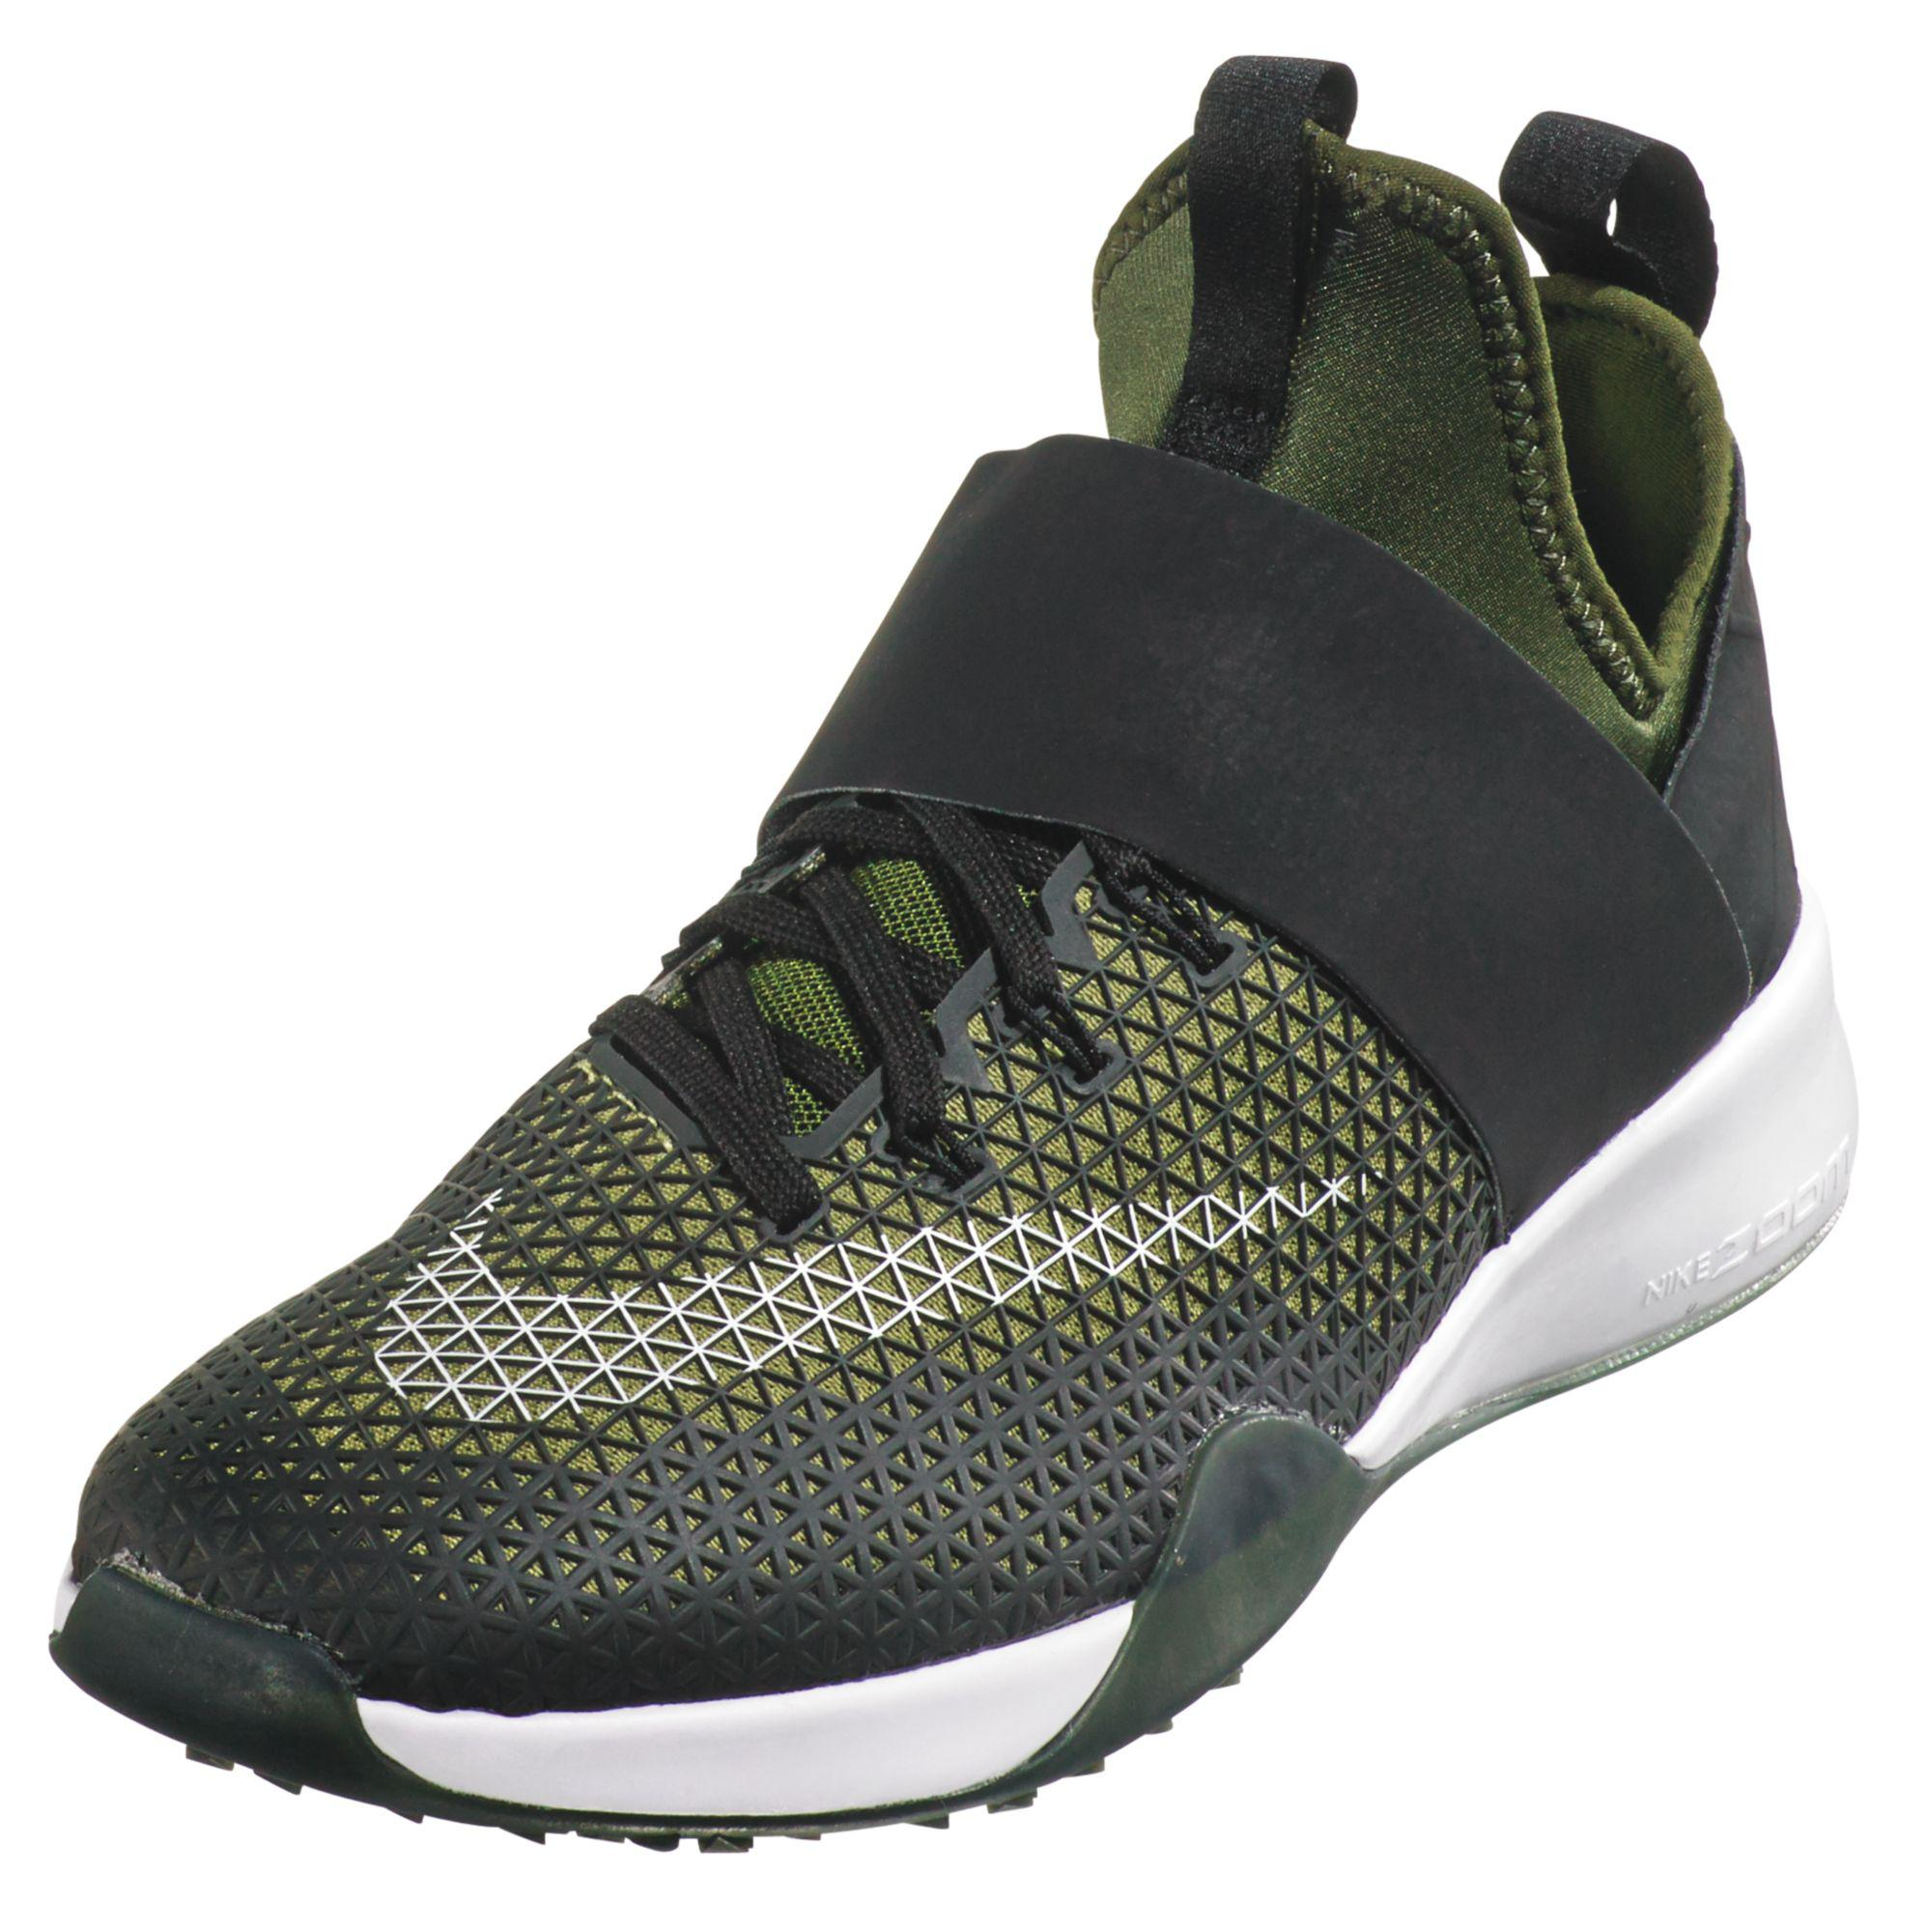 Nike - Green Air Zoom Strong Training Shoes for Men - Lyst